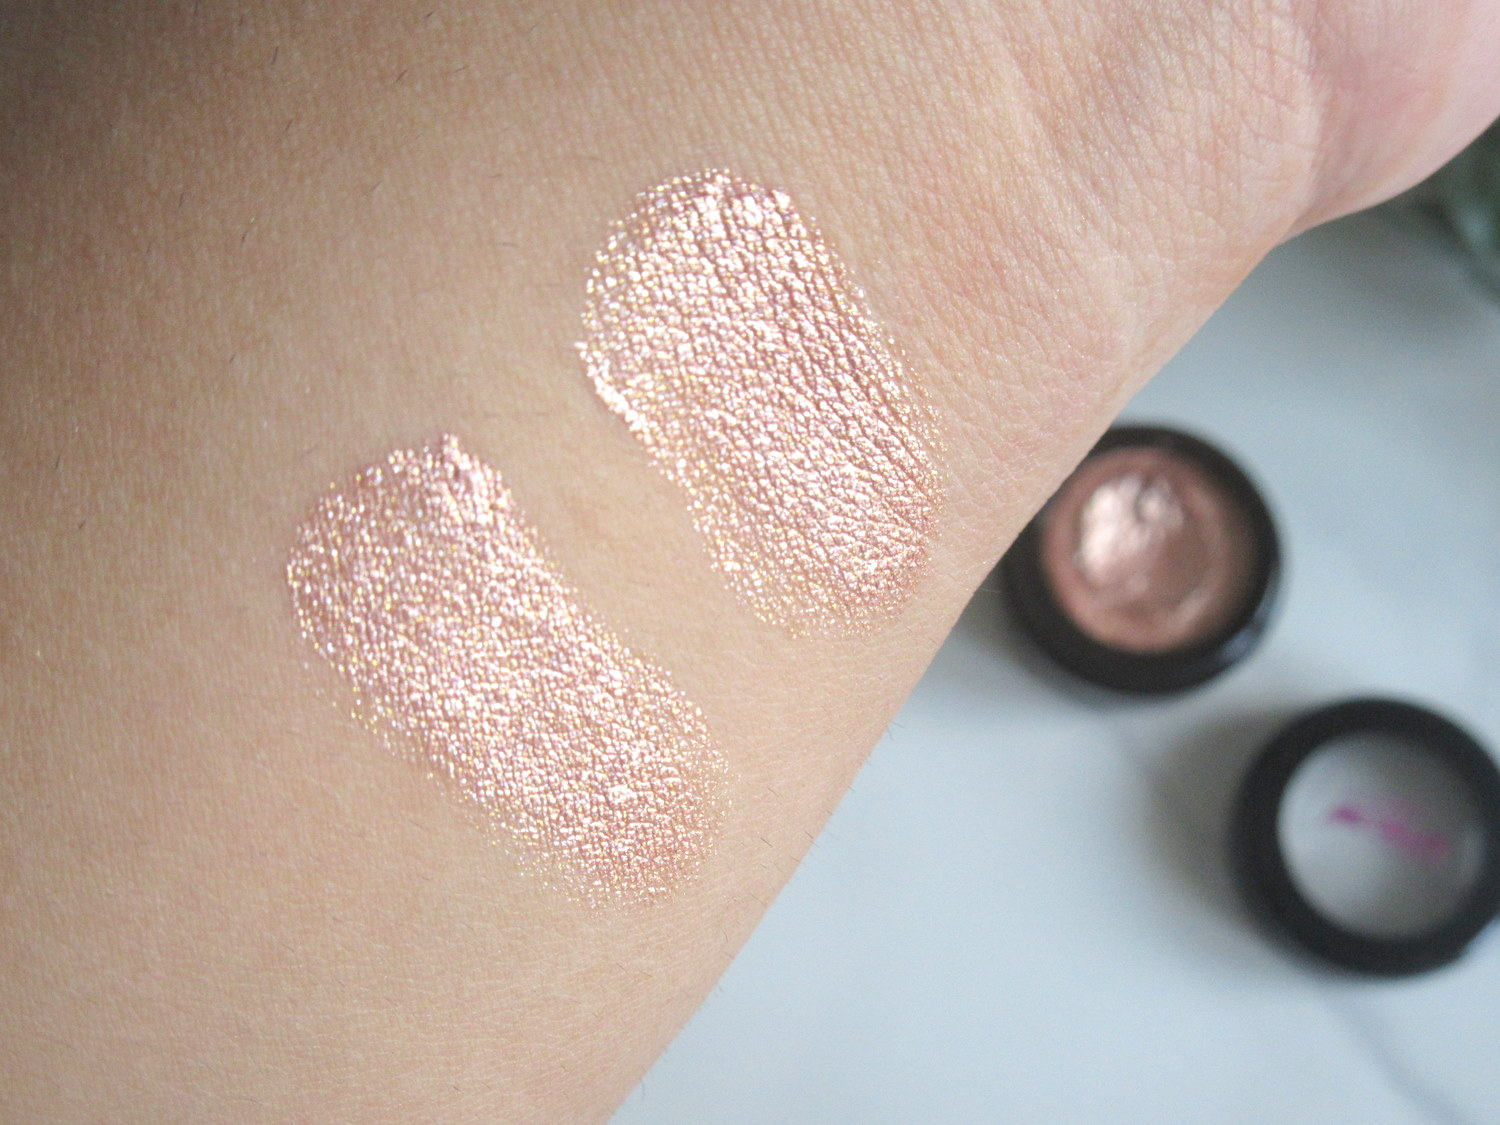 Australis Metallix Cream Eyeshadow in Gold Gaga